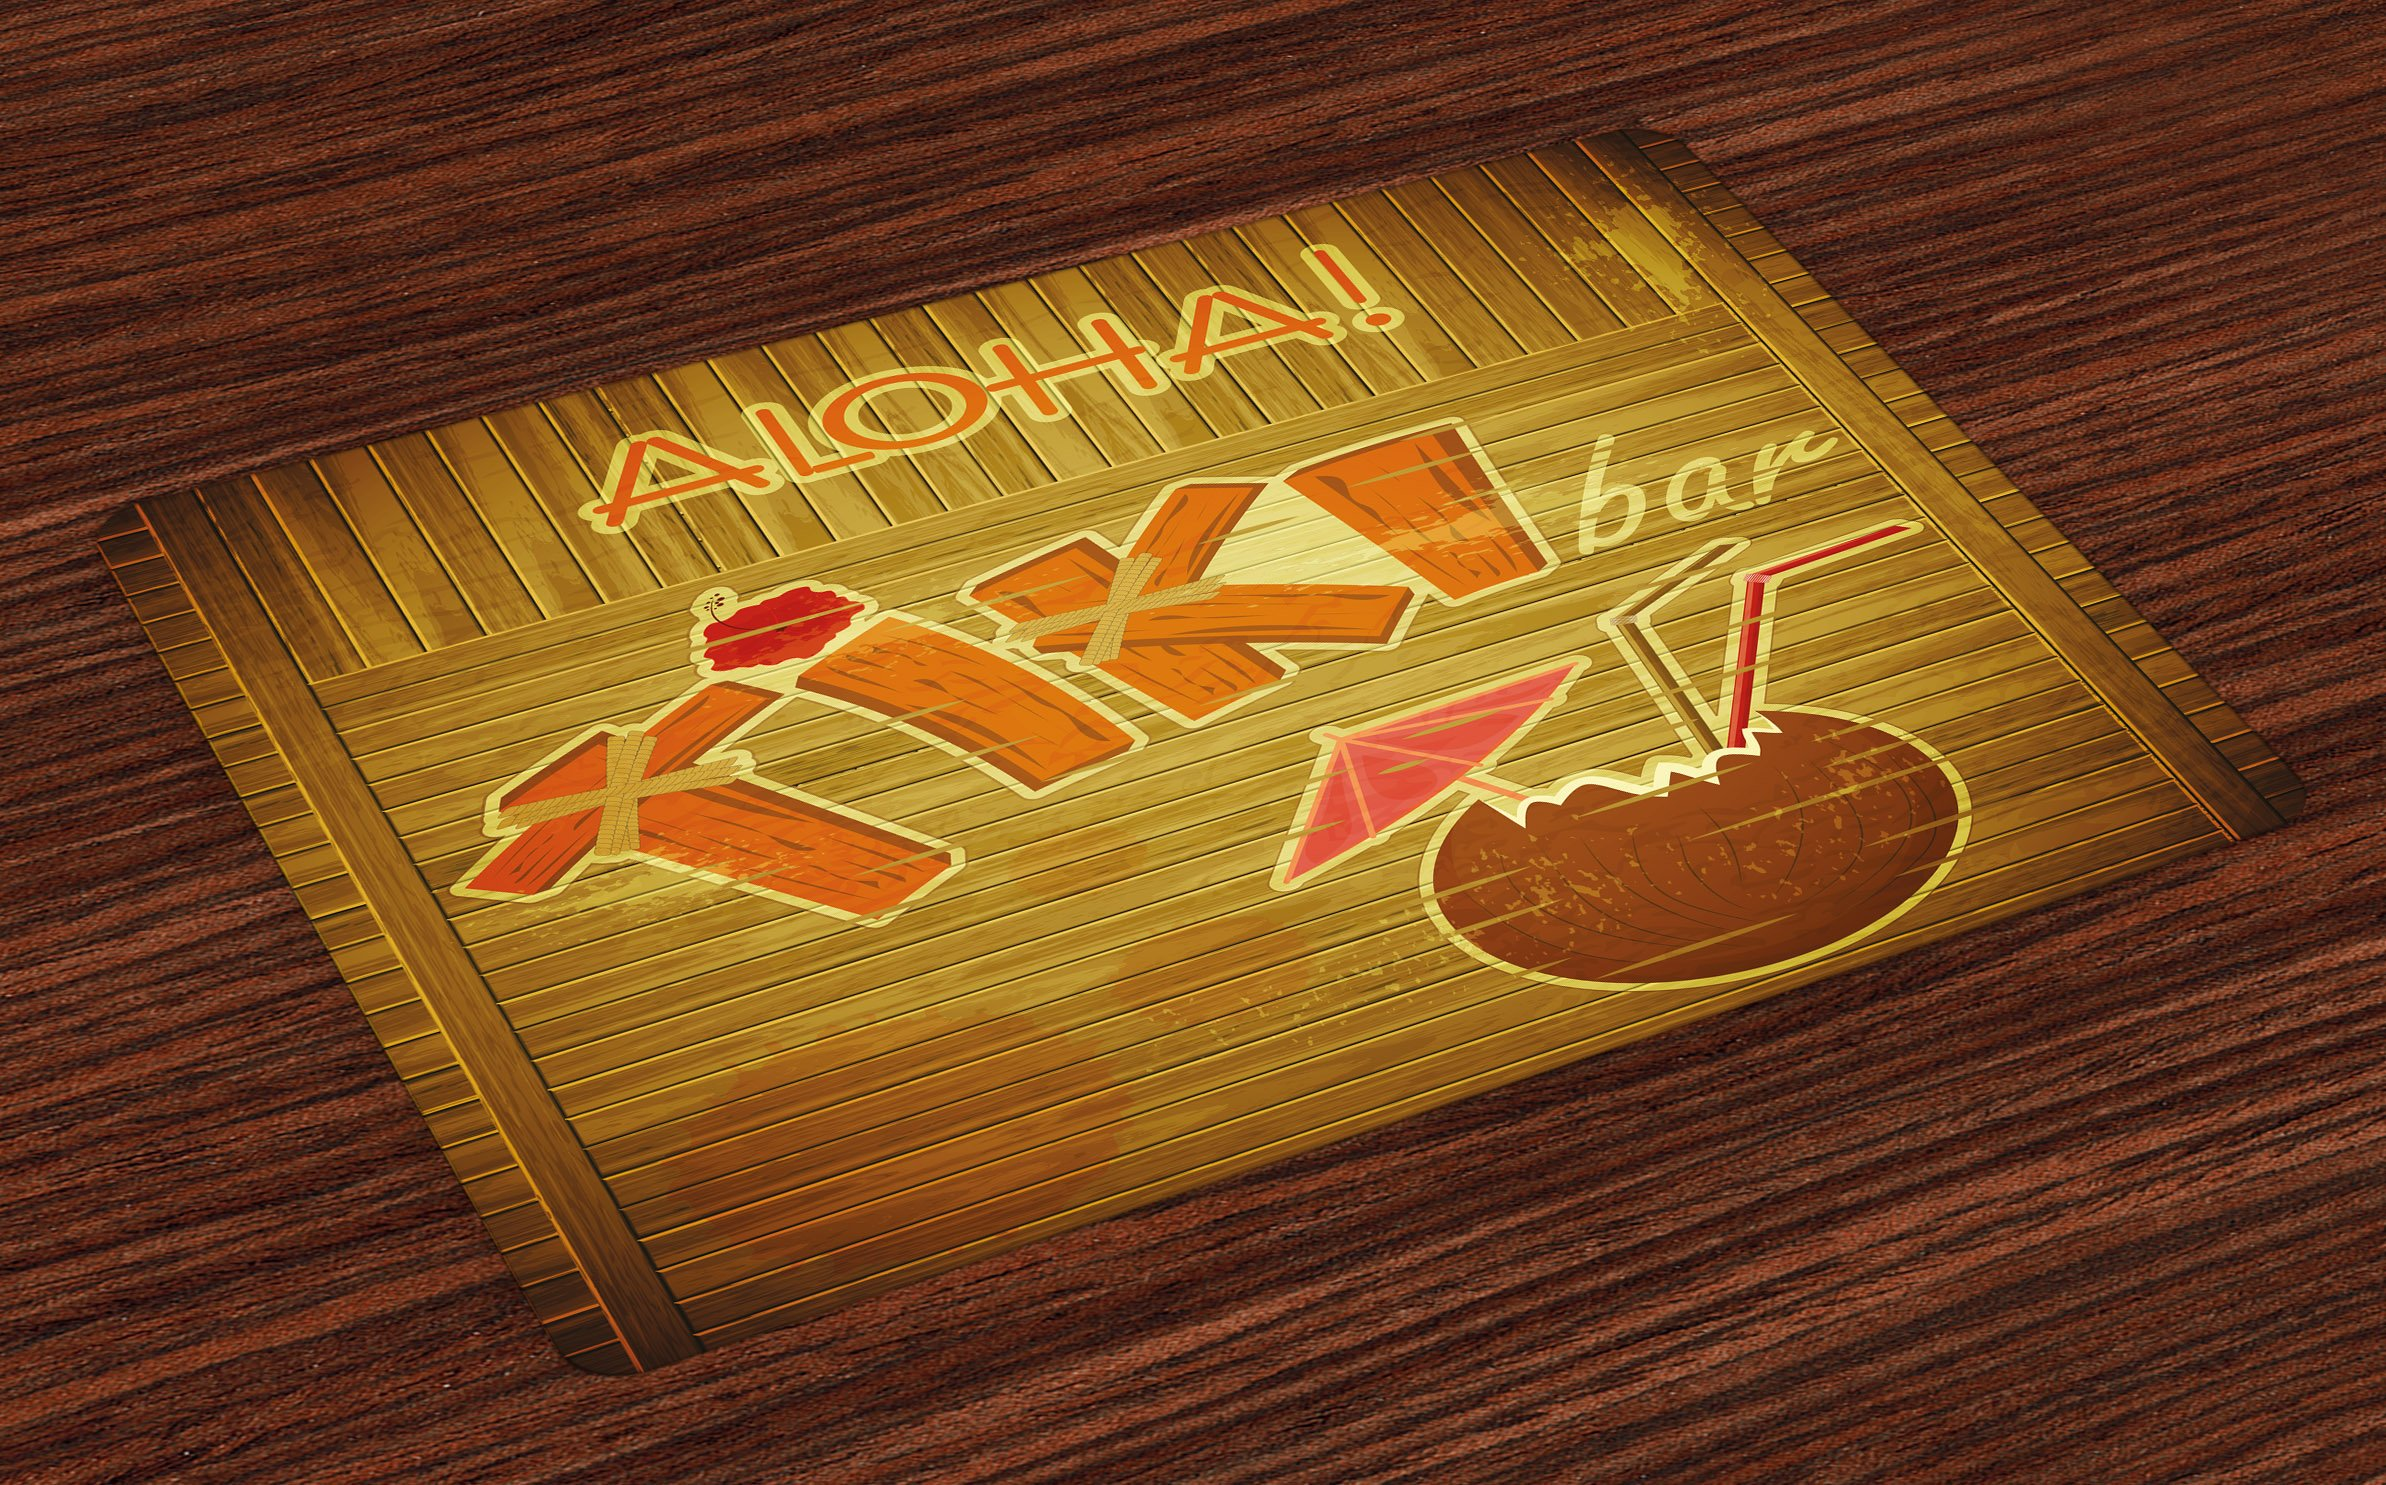 Ambesonne Tiki Bar Place Mats Set of 4, Wooden Planks on Wall with Styled Tiki Bar Text Cocktail Hibiscus Aloha, Washable Fabric Placemats for Dining Room Kitchen Table Decor, Brown Orange Pink